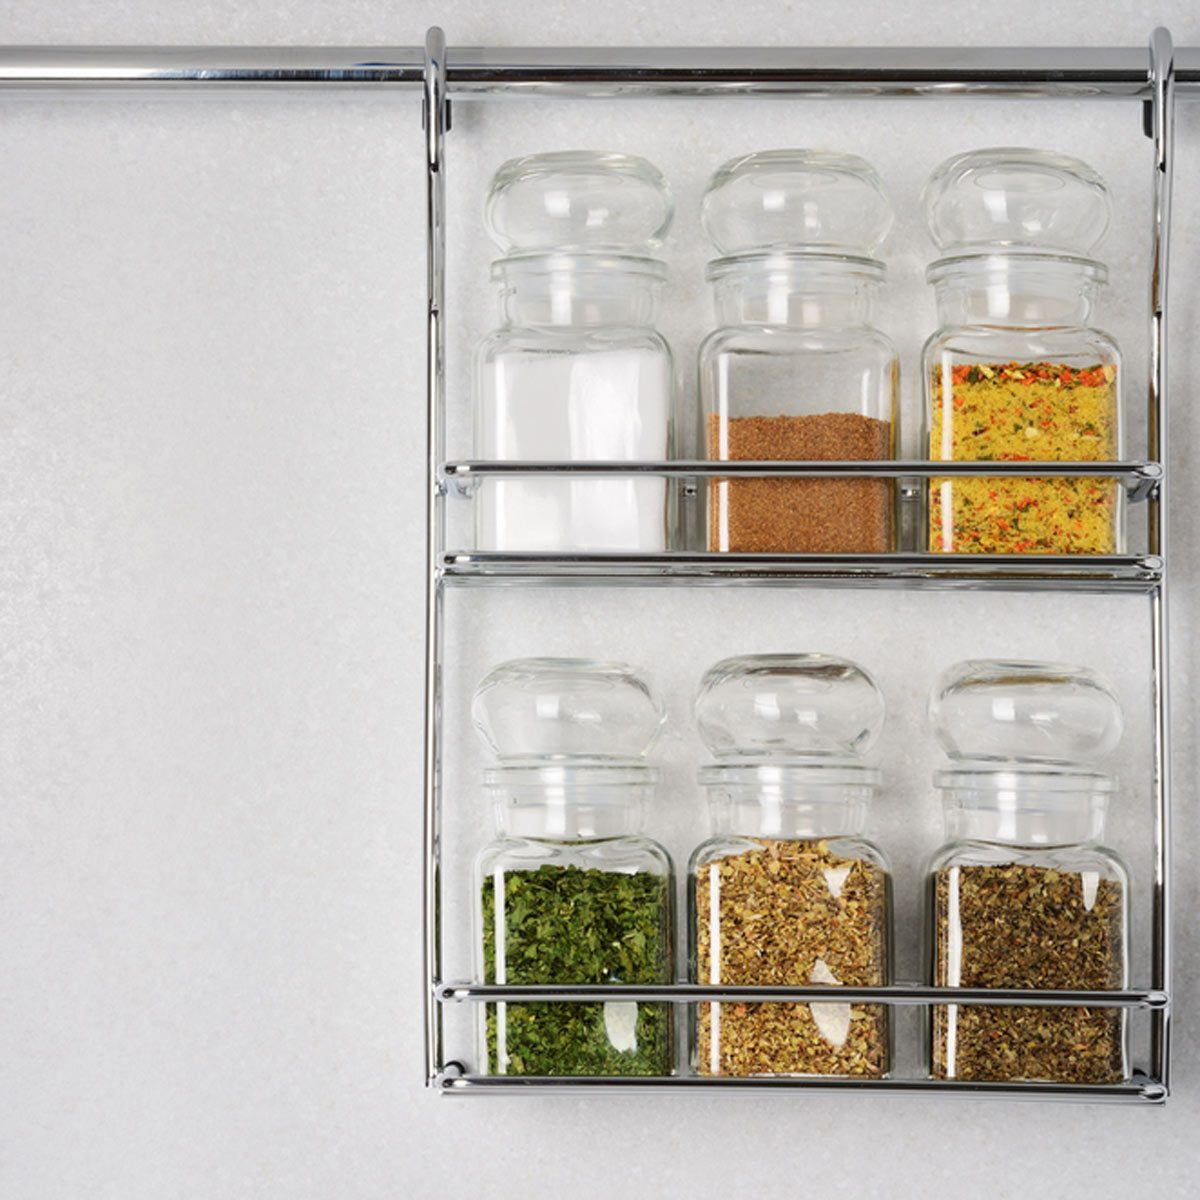 12 Ingenious Spice Storage Ideas The Family Handyman